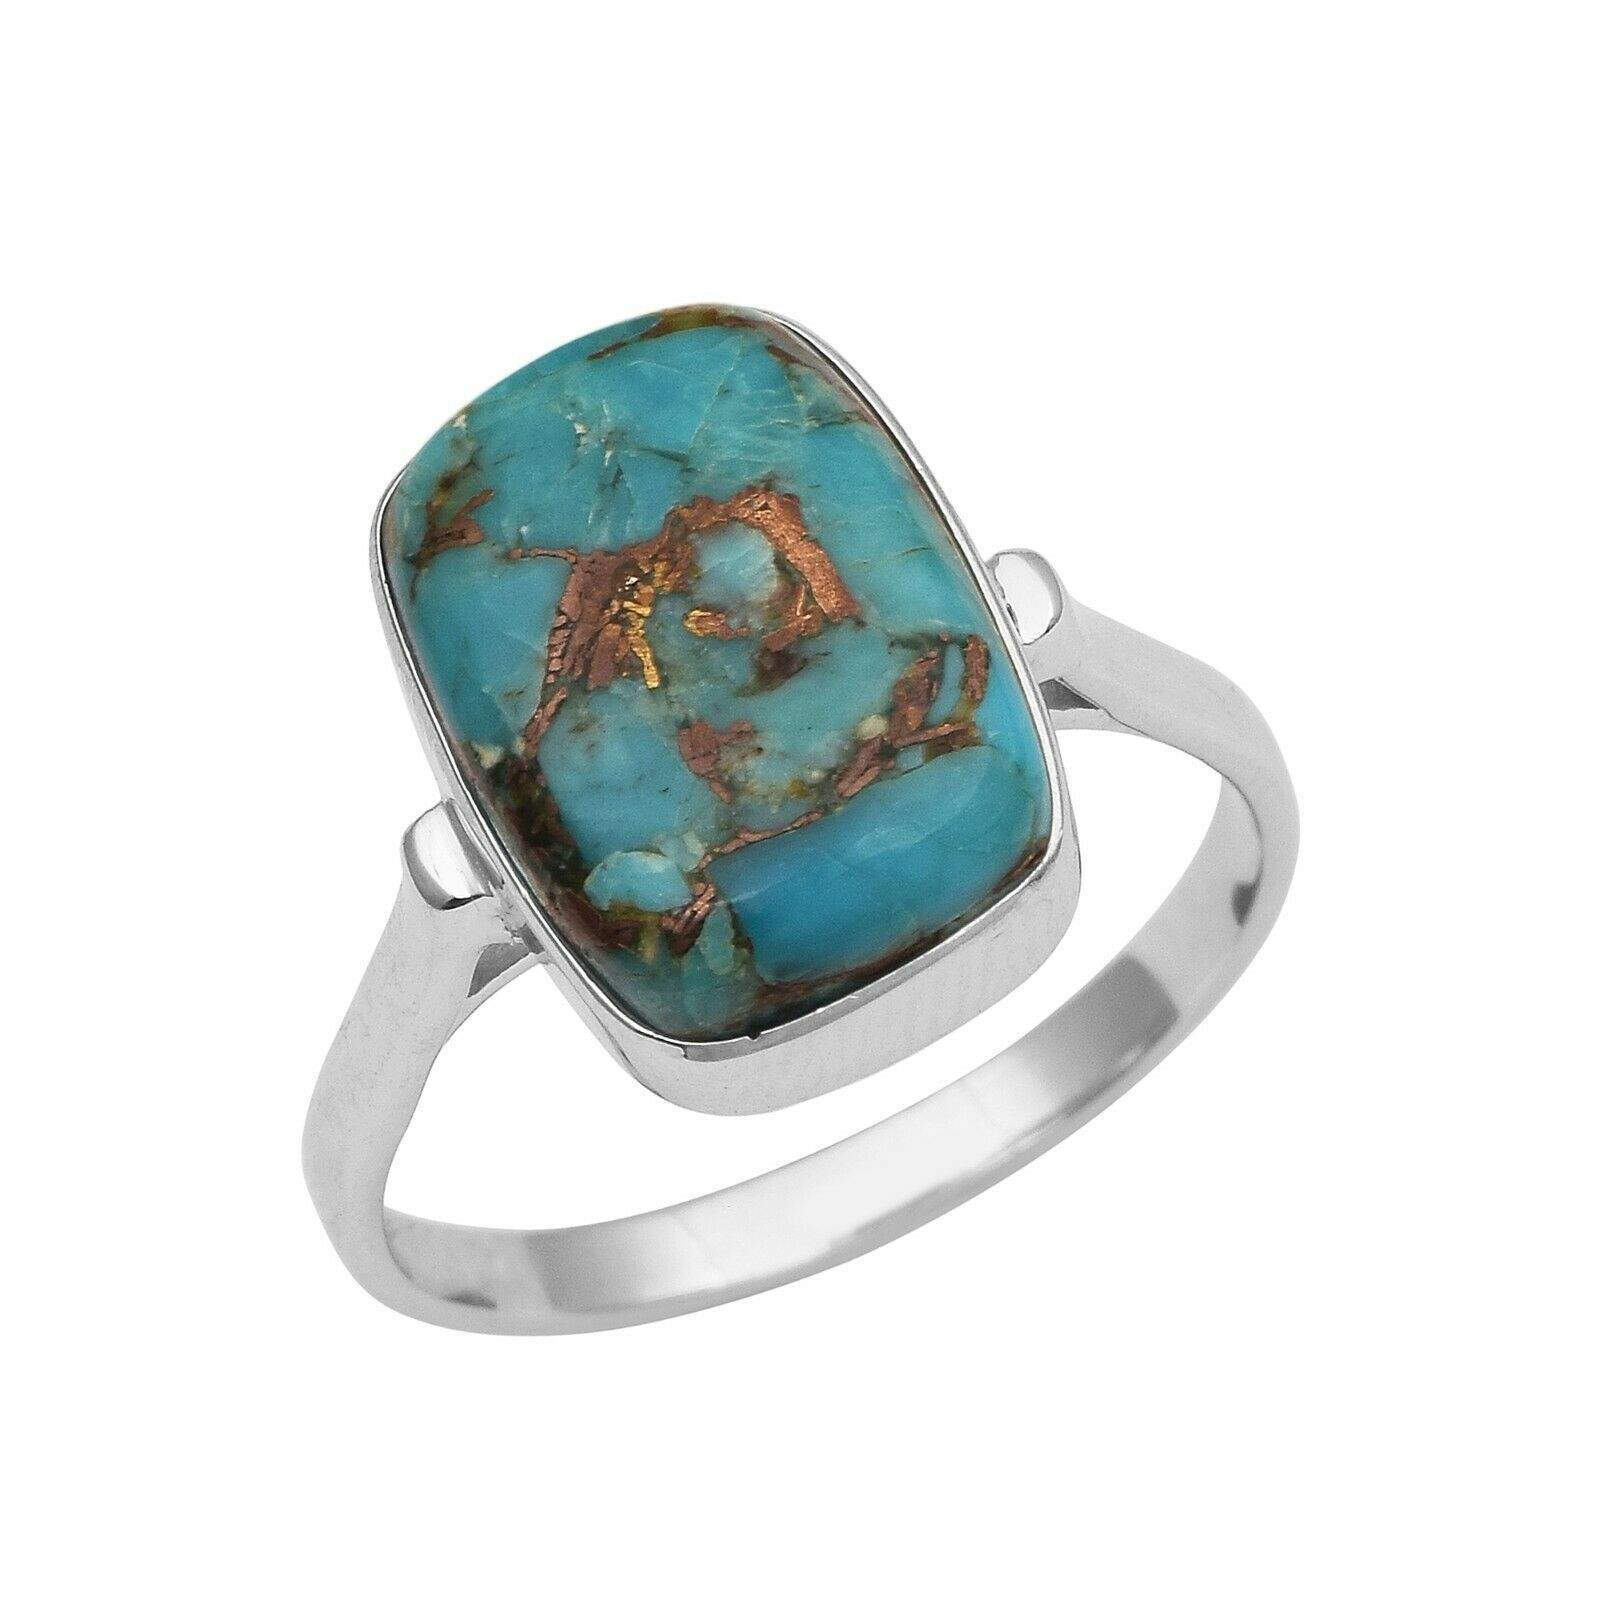 Primary image for 925 Fine Silver 5.50 Ct Blue Turquoise Gemstone Octagon Cab Women Wedding Ring